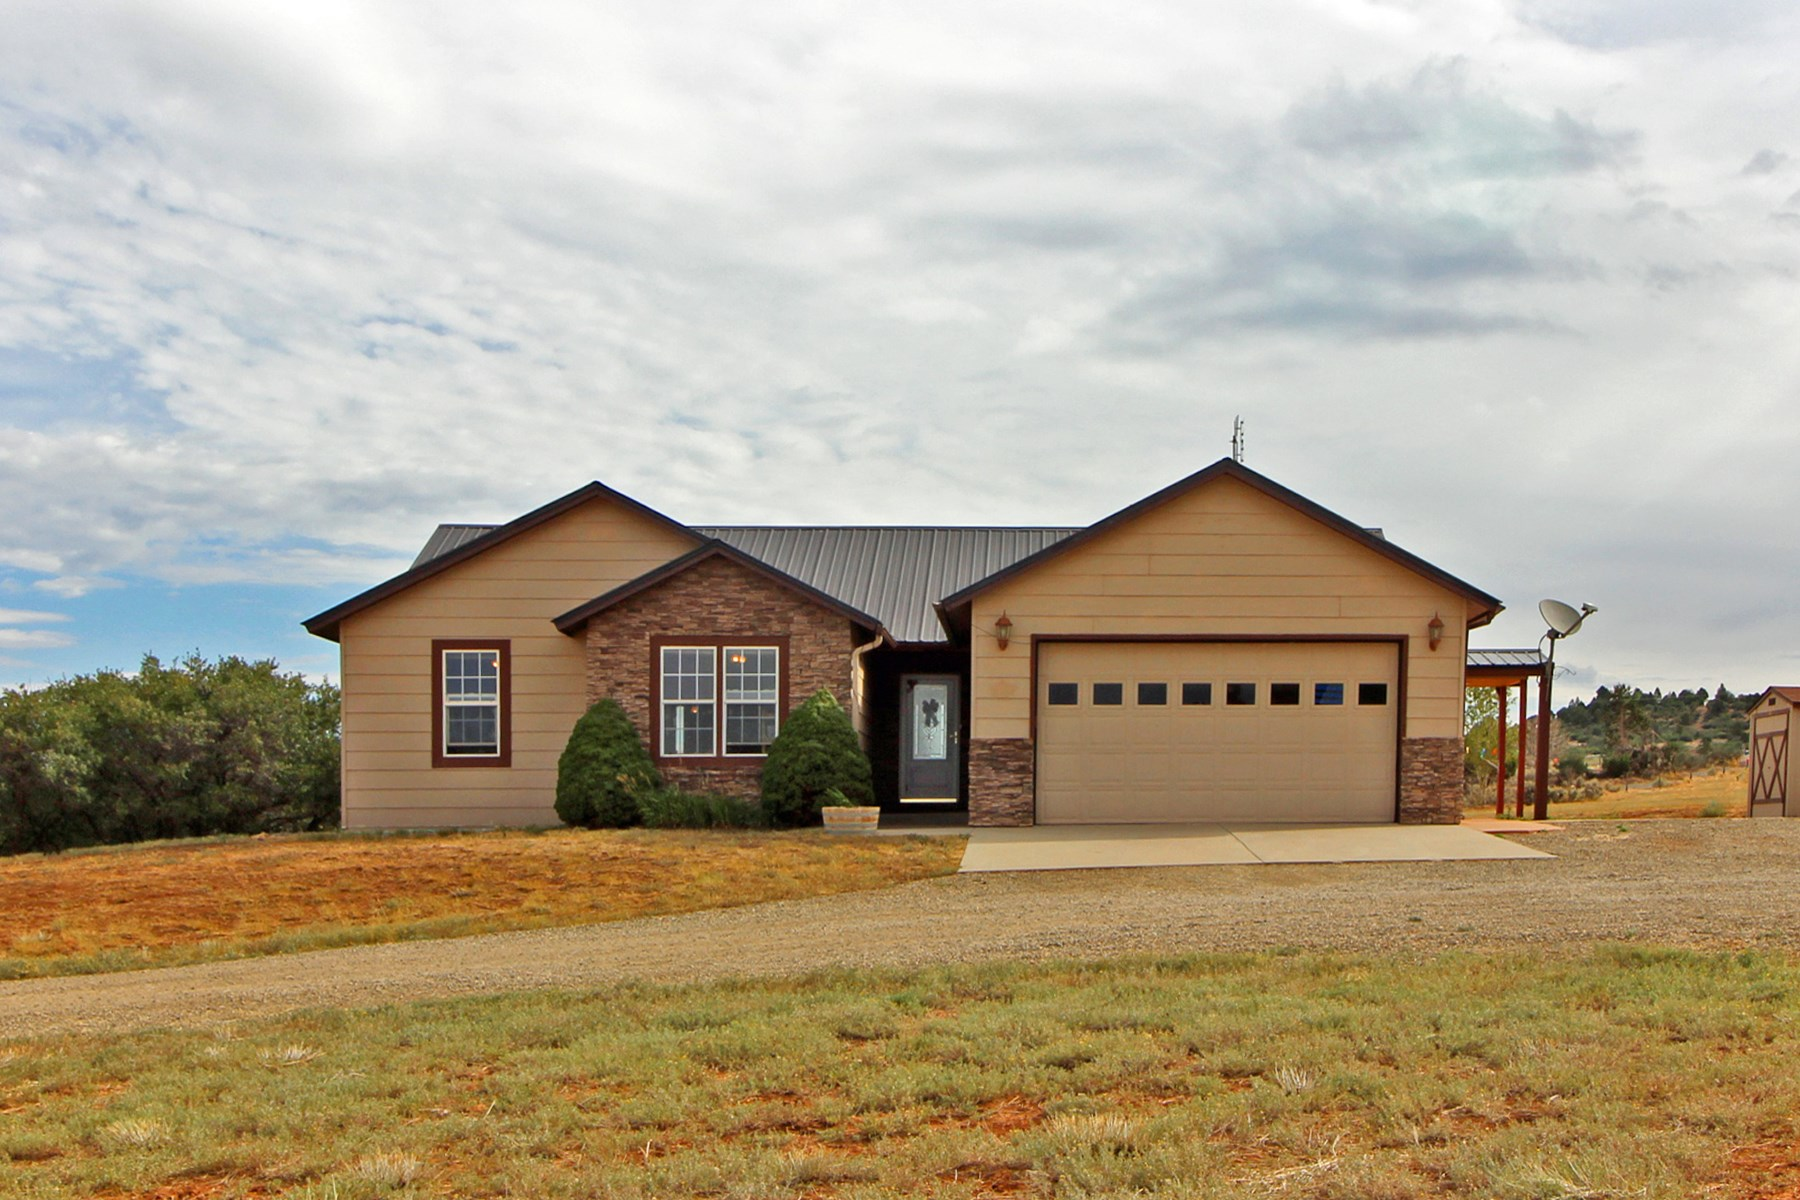 3 BR/2 BA country home on 3+ acres in Southwest, Colorado